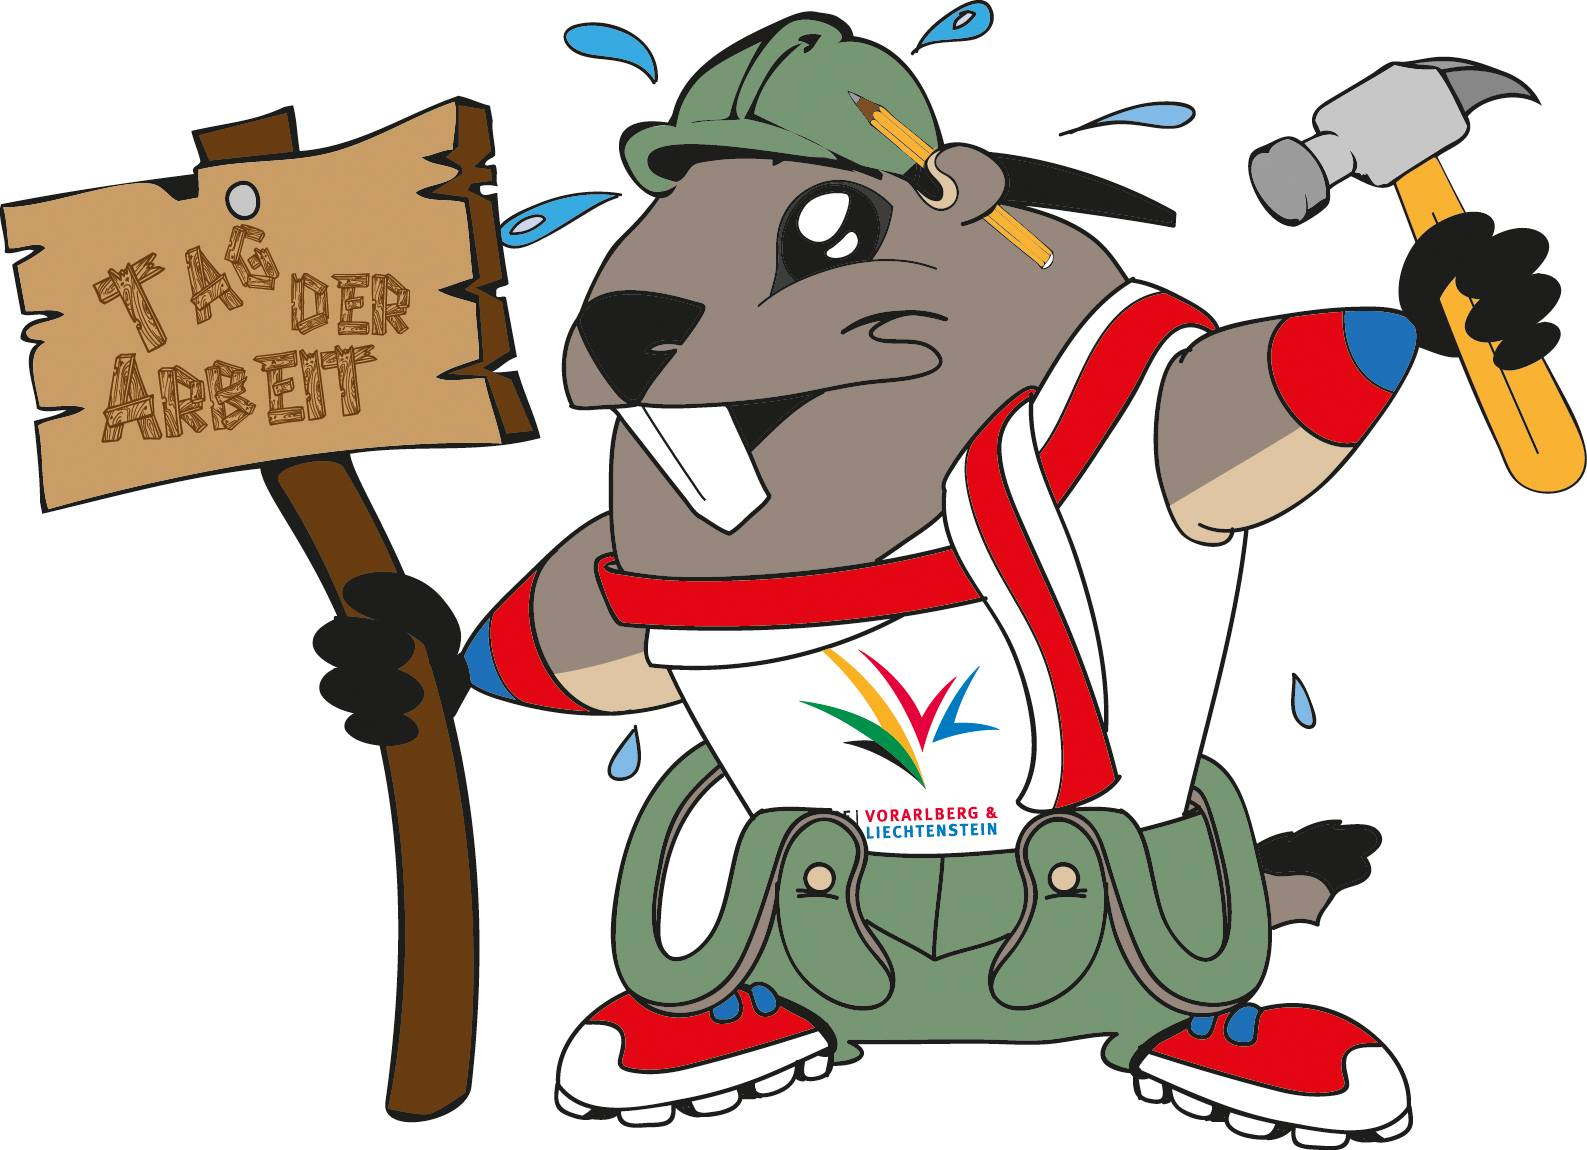 European Youth Olympic Festival Vorarlberg Liechtenstein mascot Alpy was introduced to the 49 National Olympic Committees of the European Olympic Committees in Cyprus today ©EYOF 2015